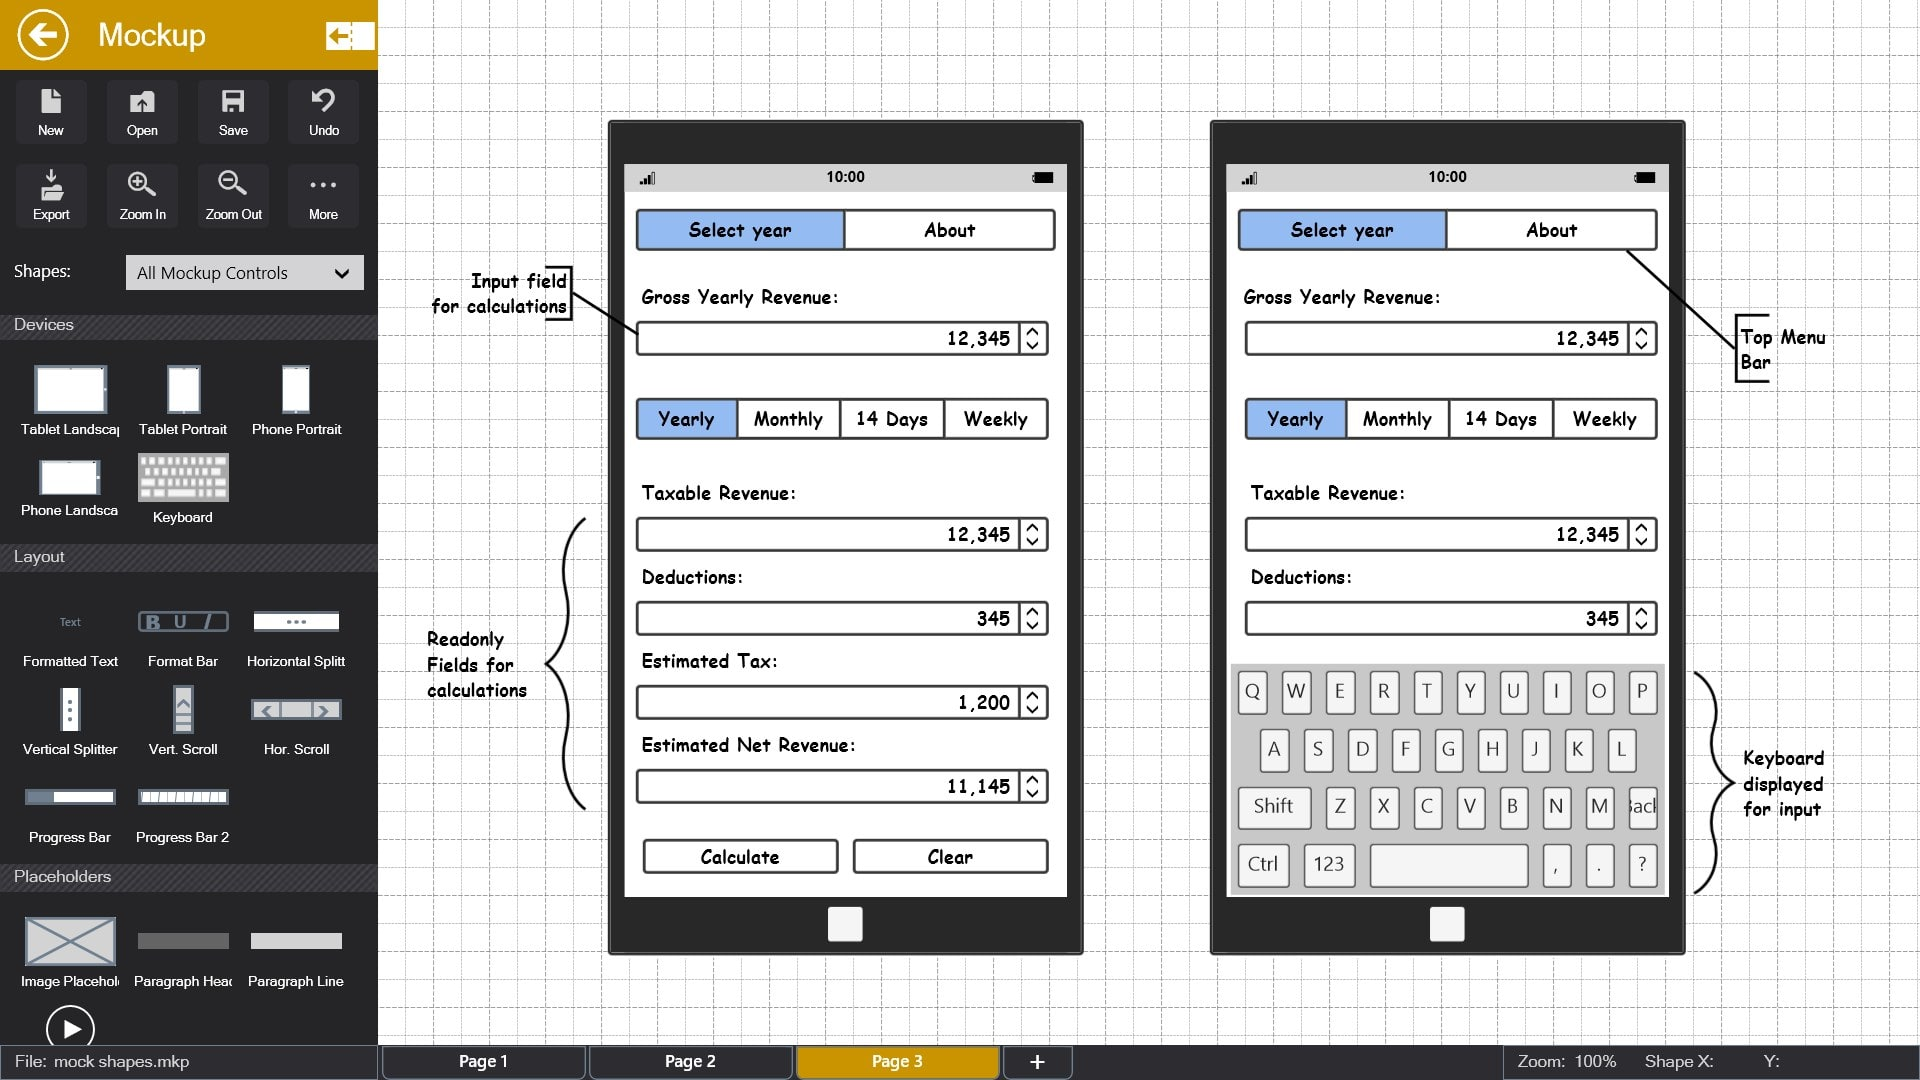 Mockup Pro - Wireframe and Interface Design